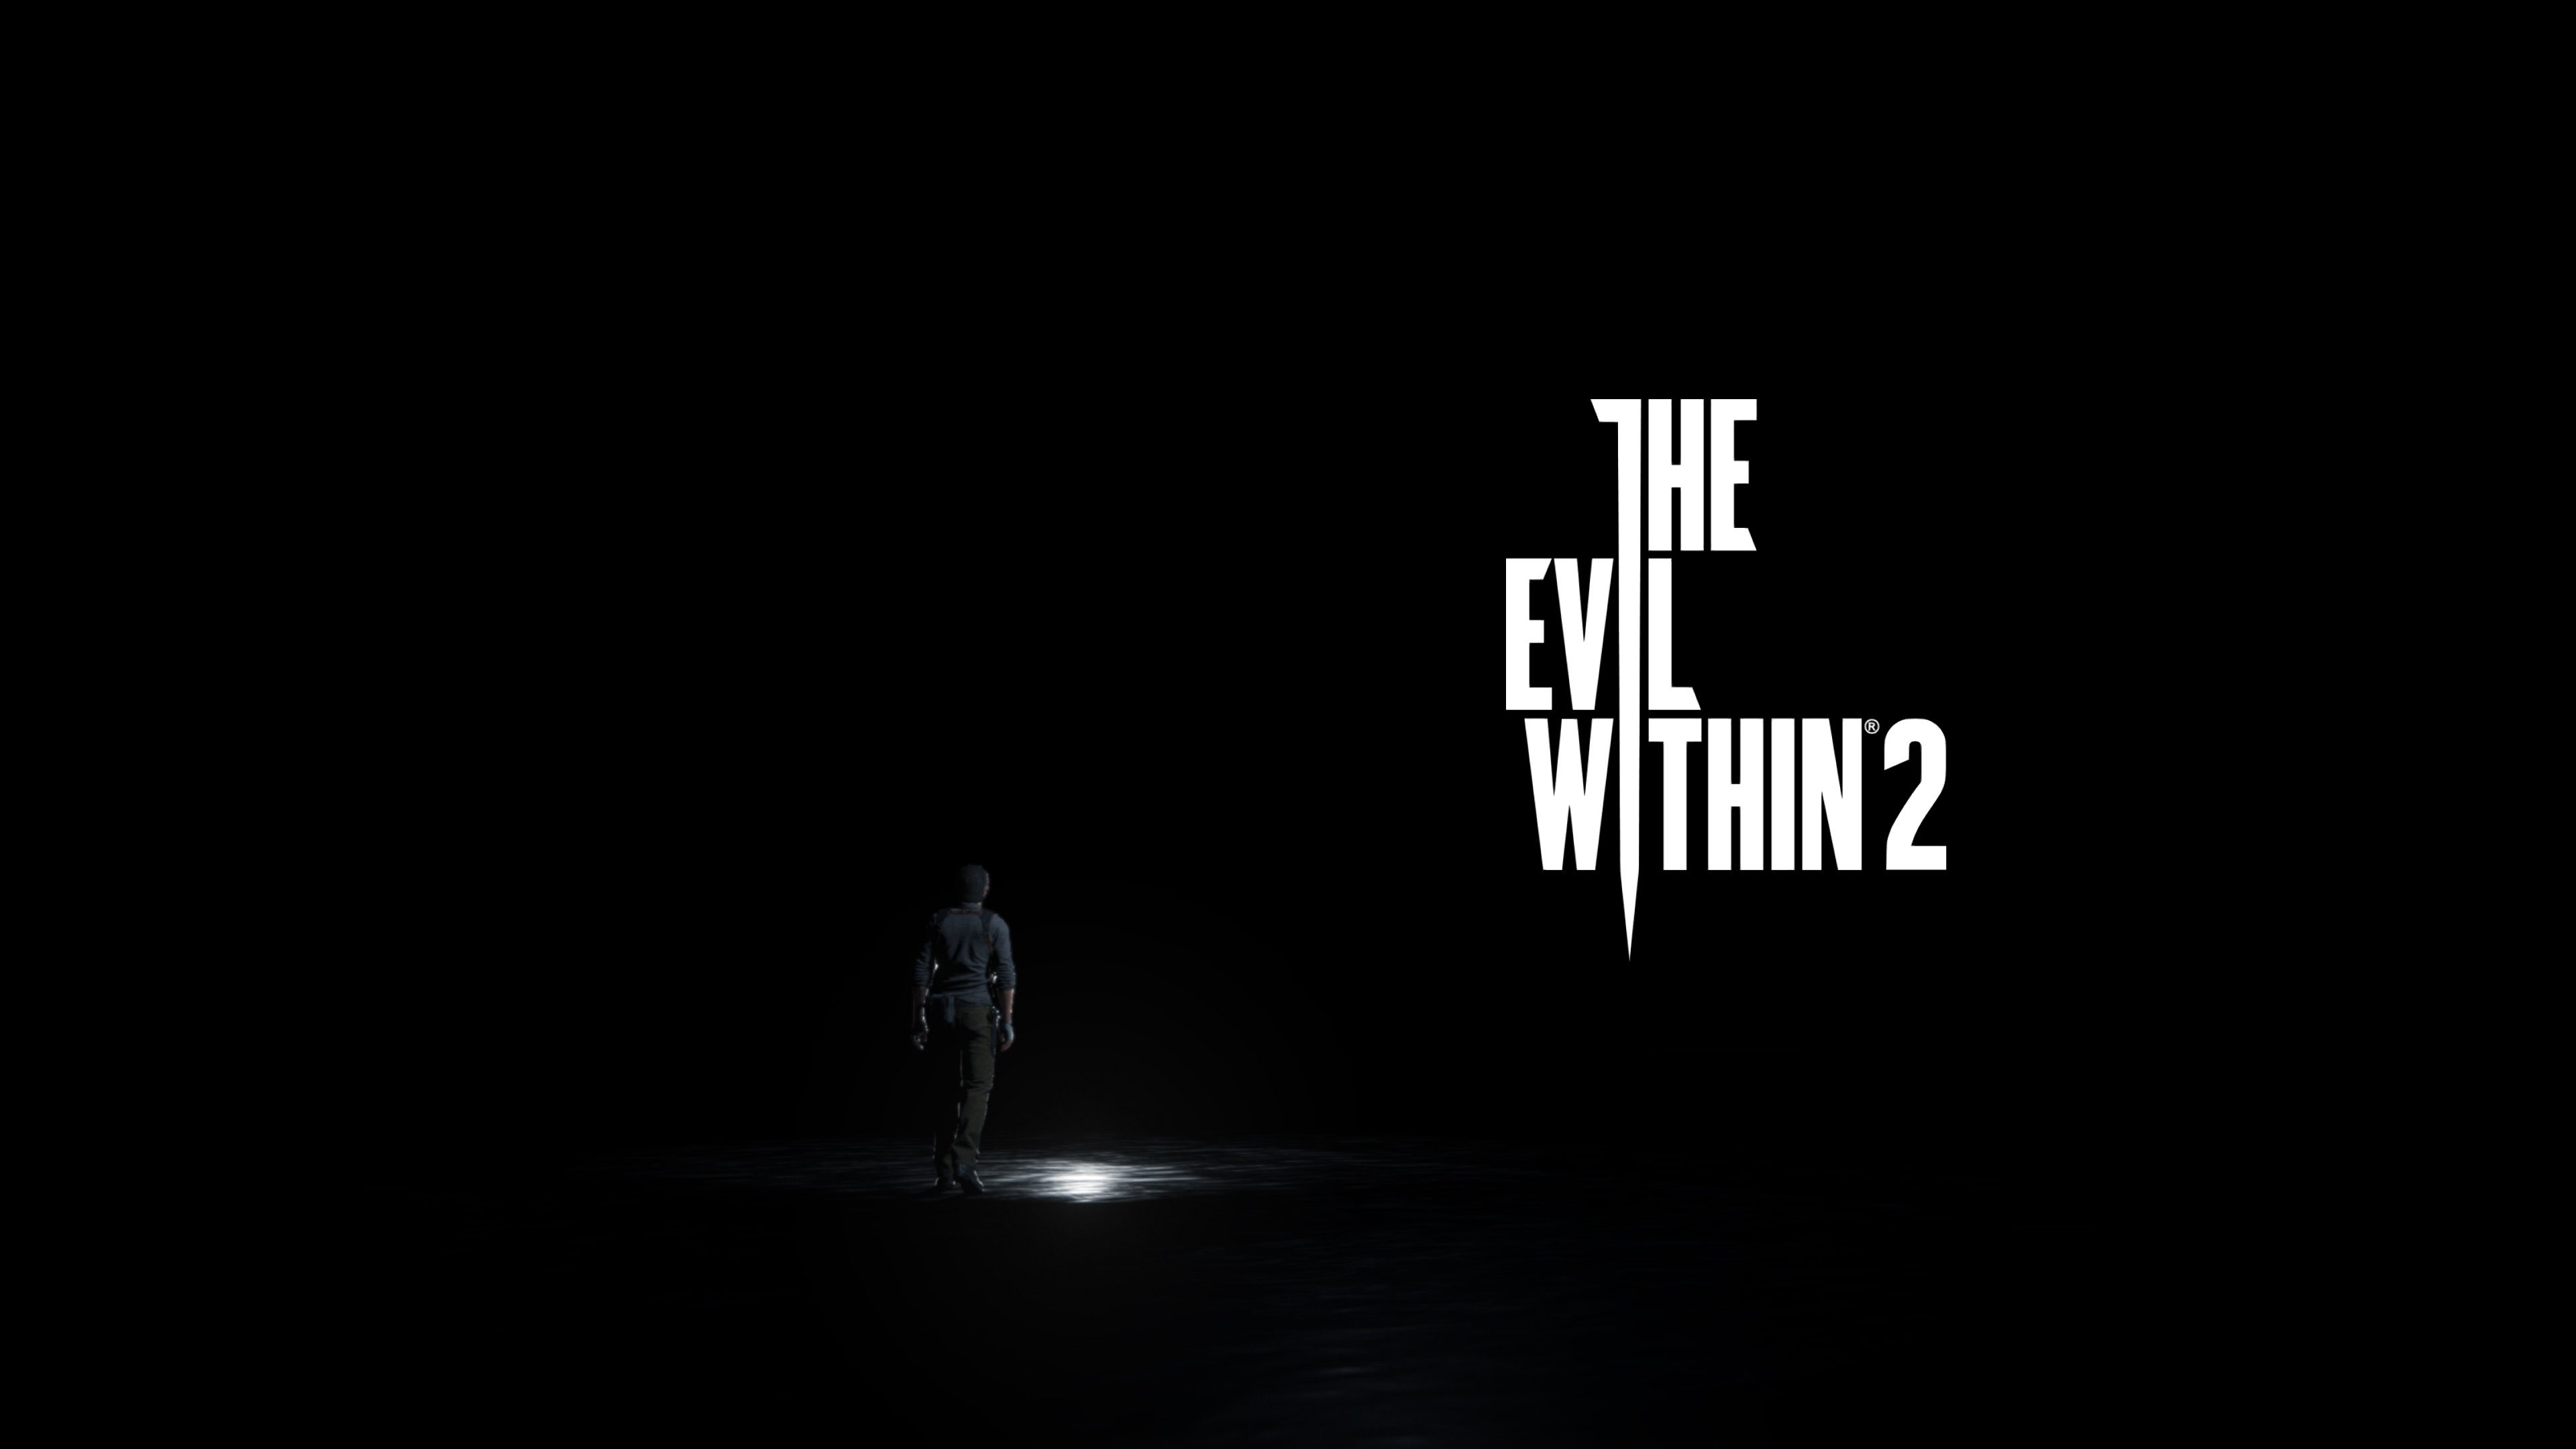 The Evil Within 2 Game Hd Games 4k Wallpapers Images